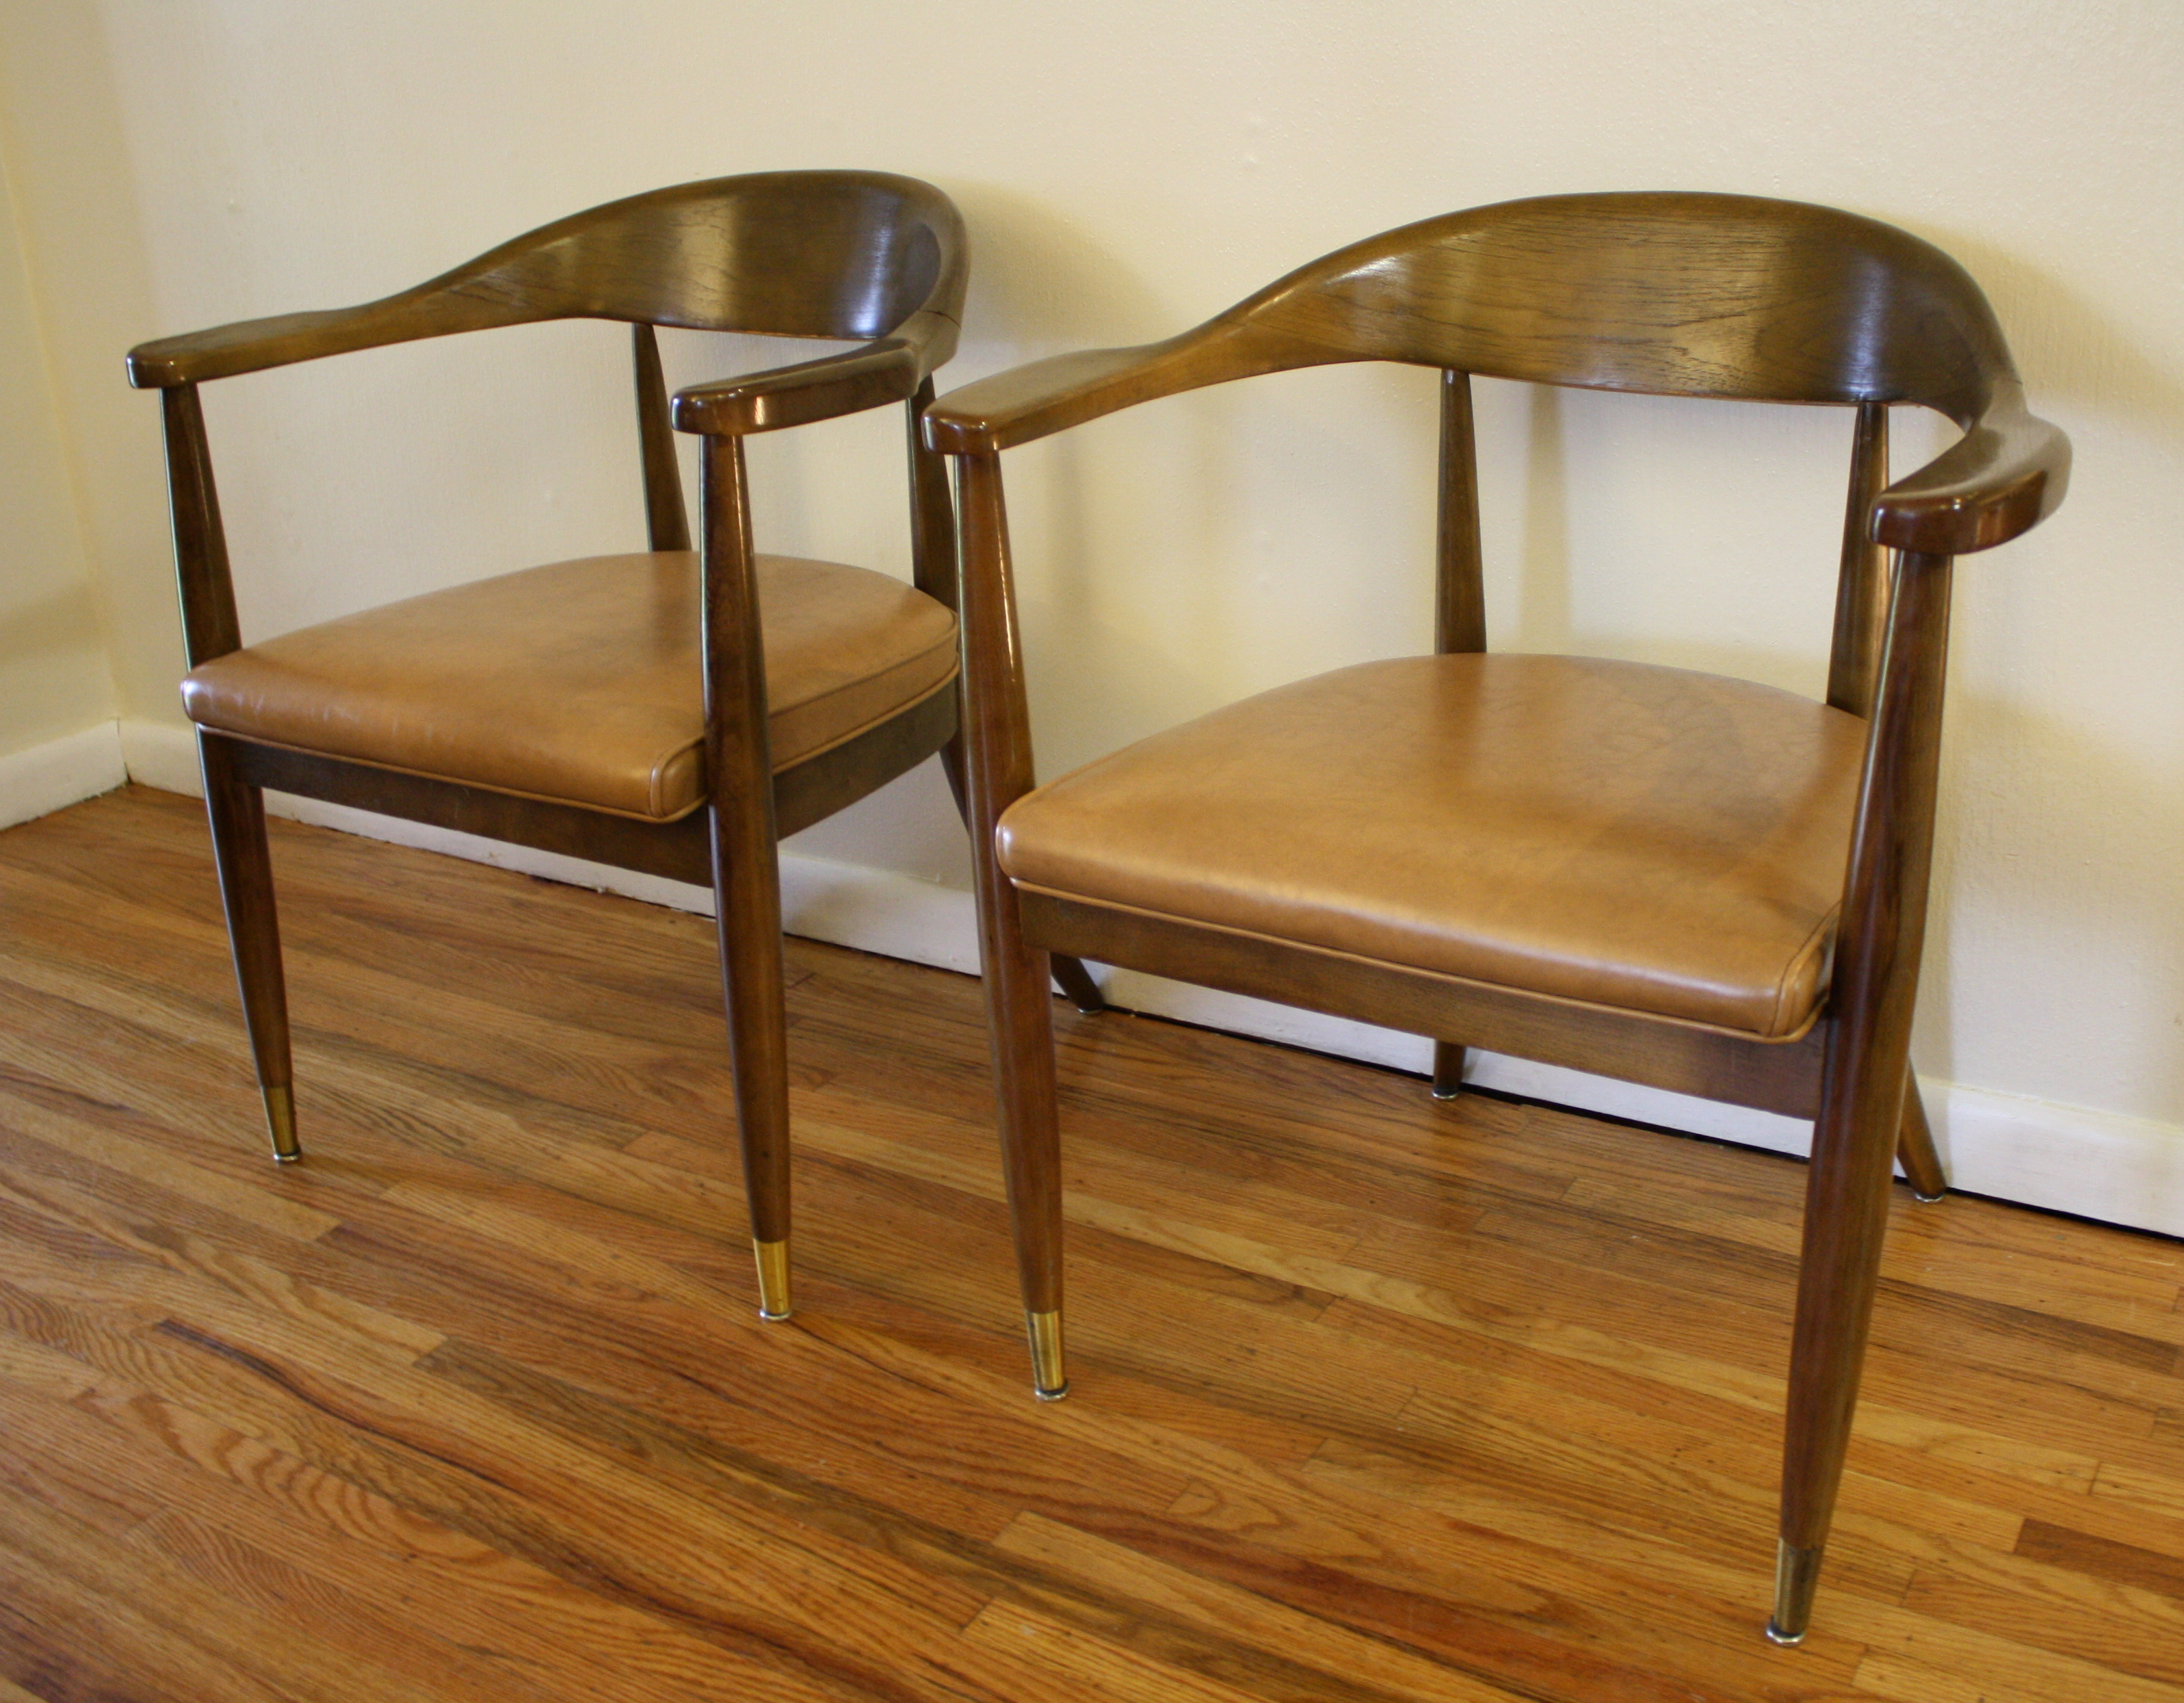 Mid century modern chairs by the boling chair company Mid century chairs